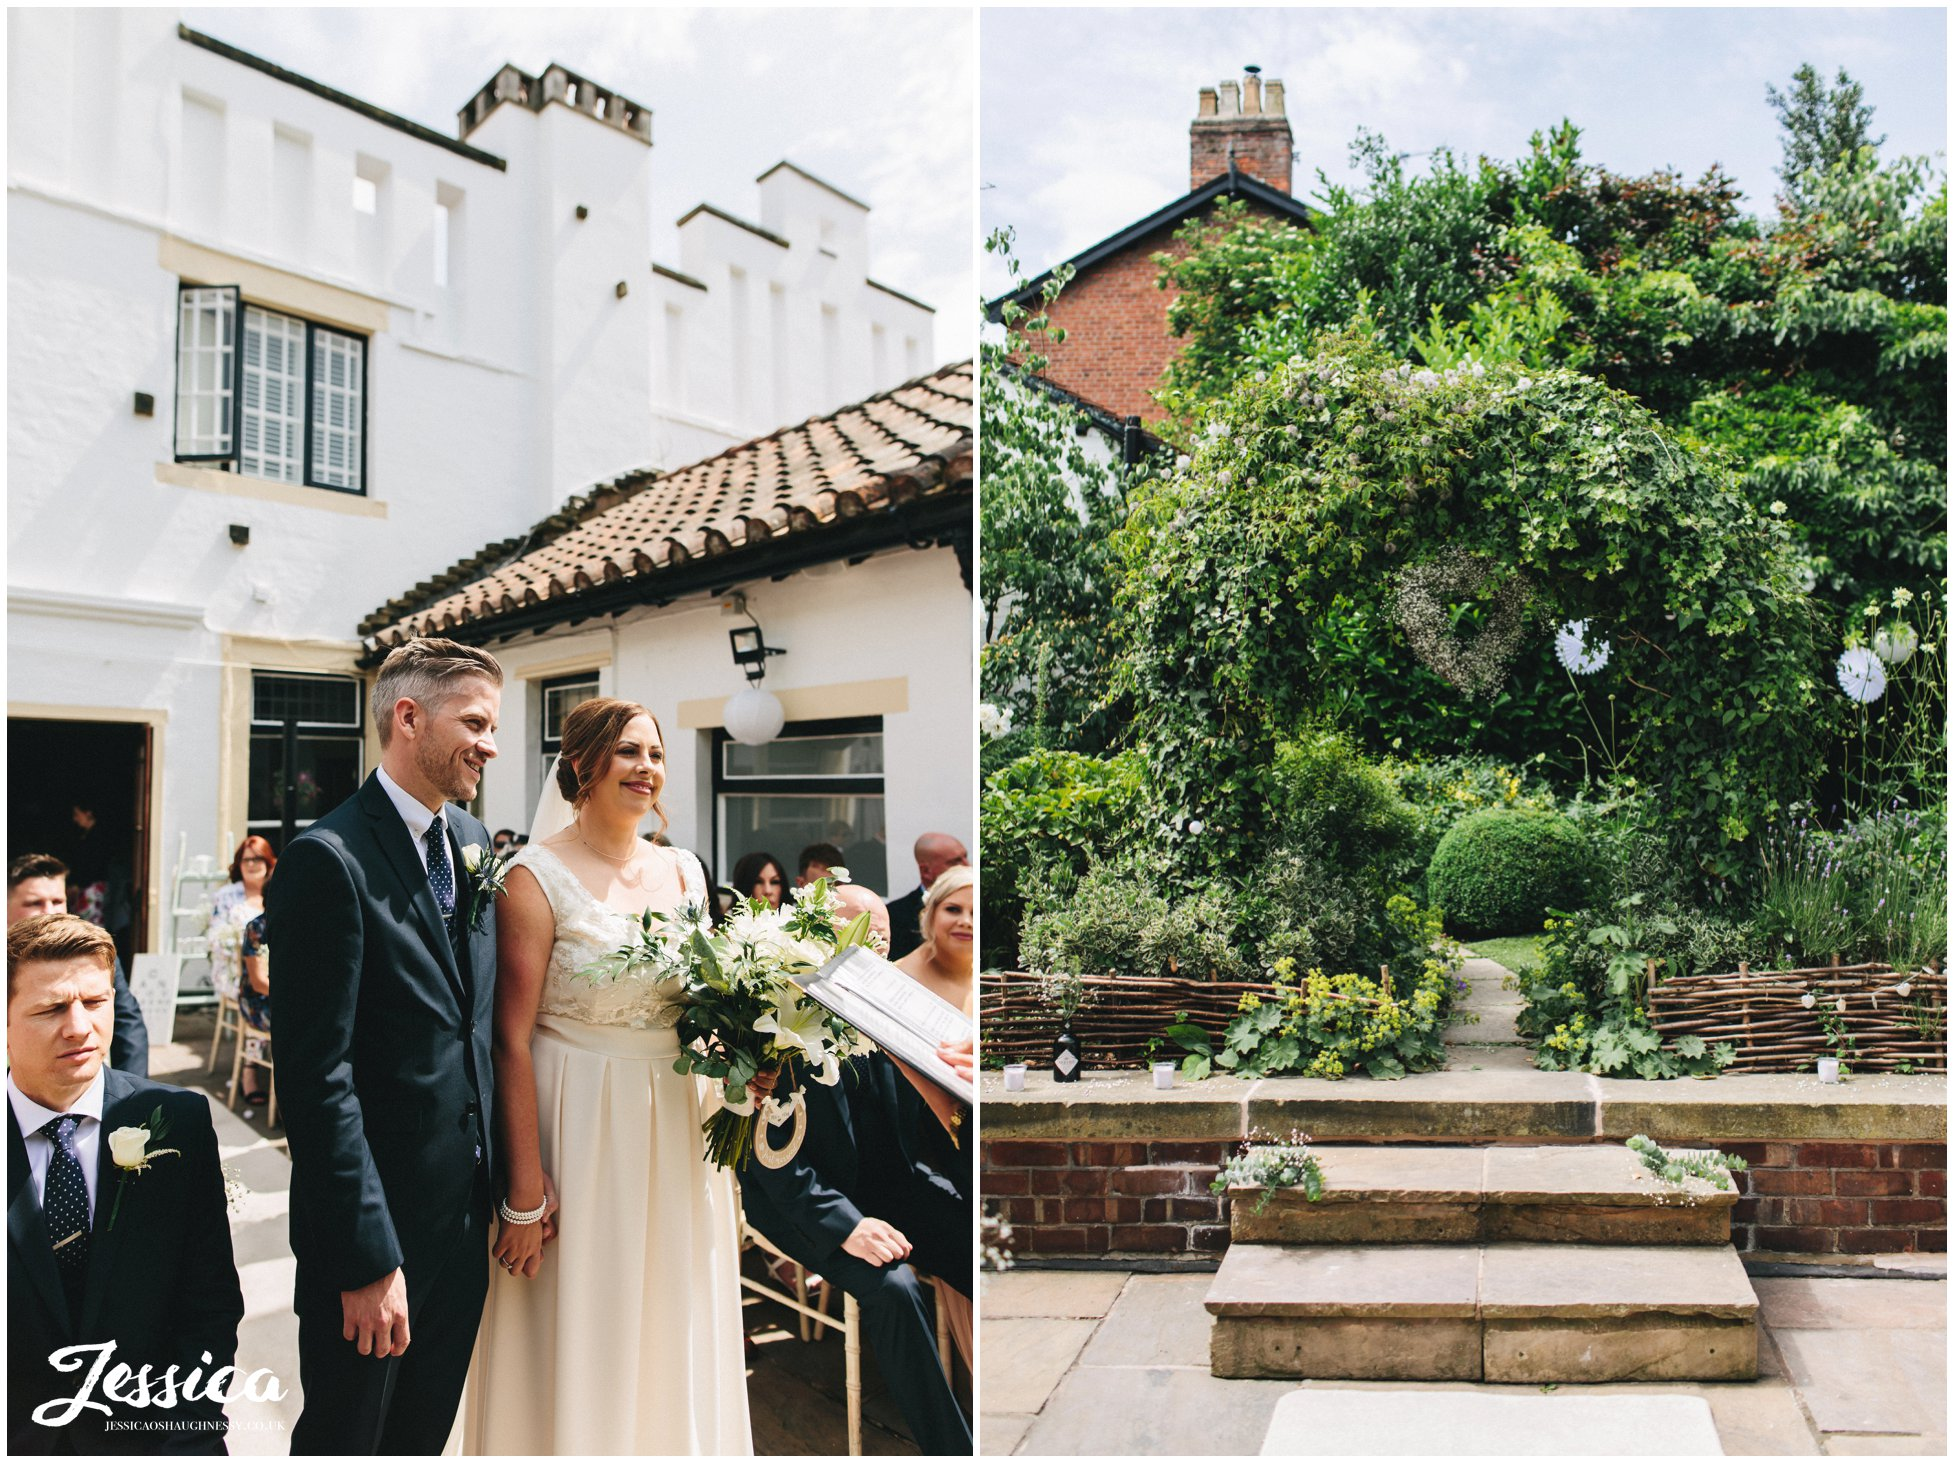 the bride & groom have their ceremony outdoors on the roof garden